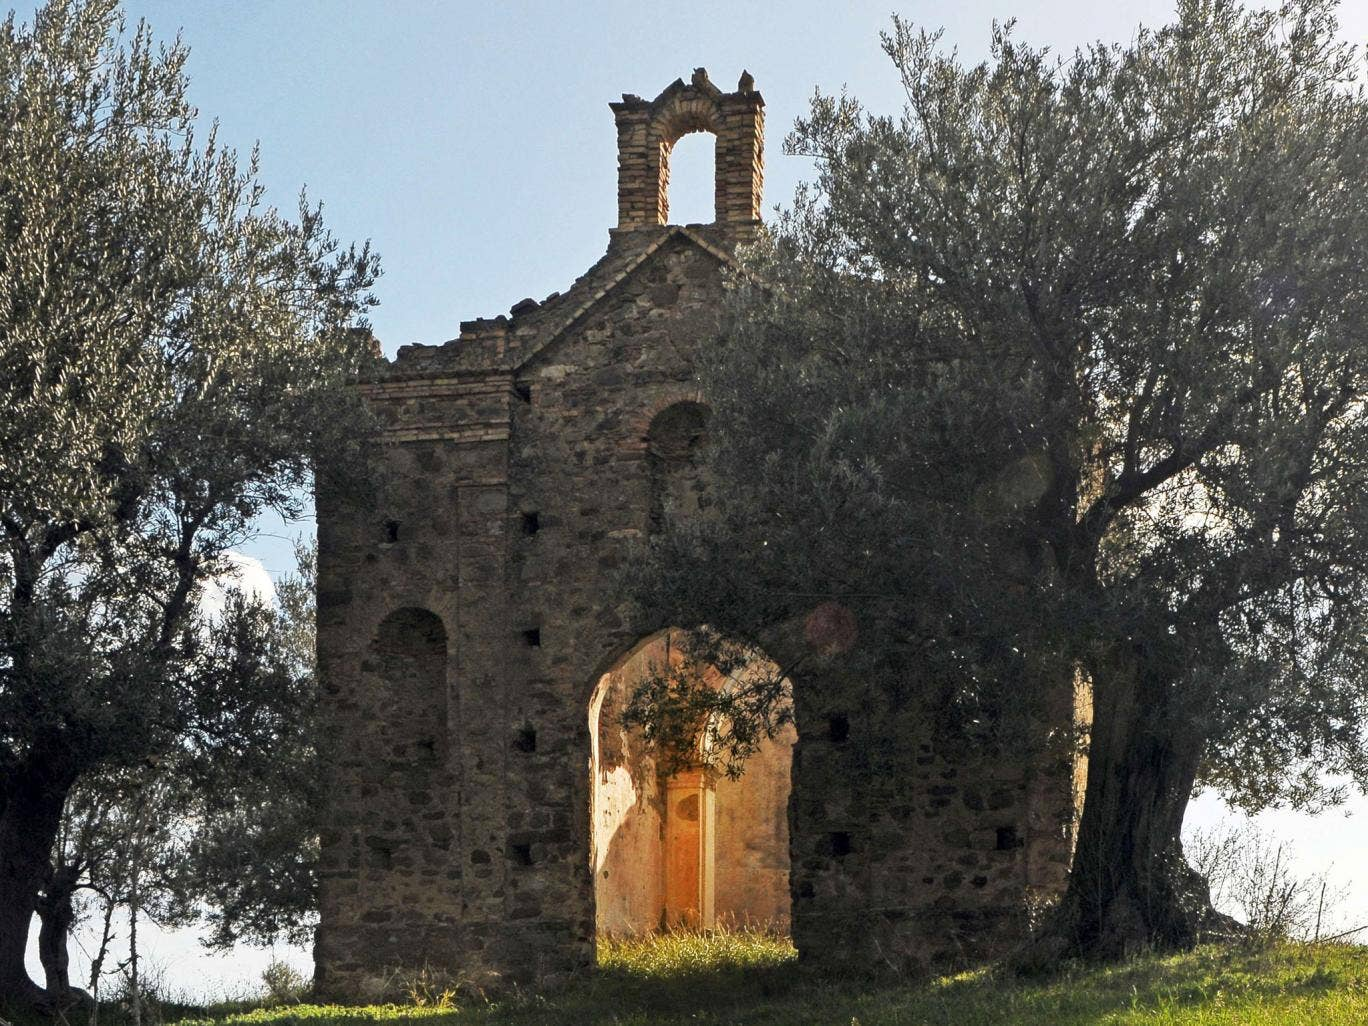 The church in Montegiordano, Calabria, before it was dismantled